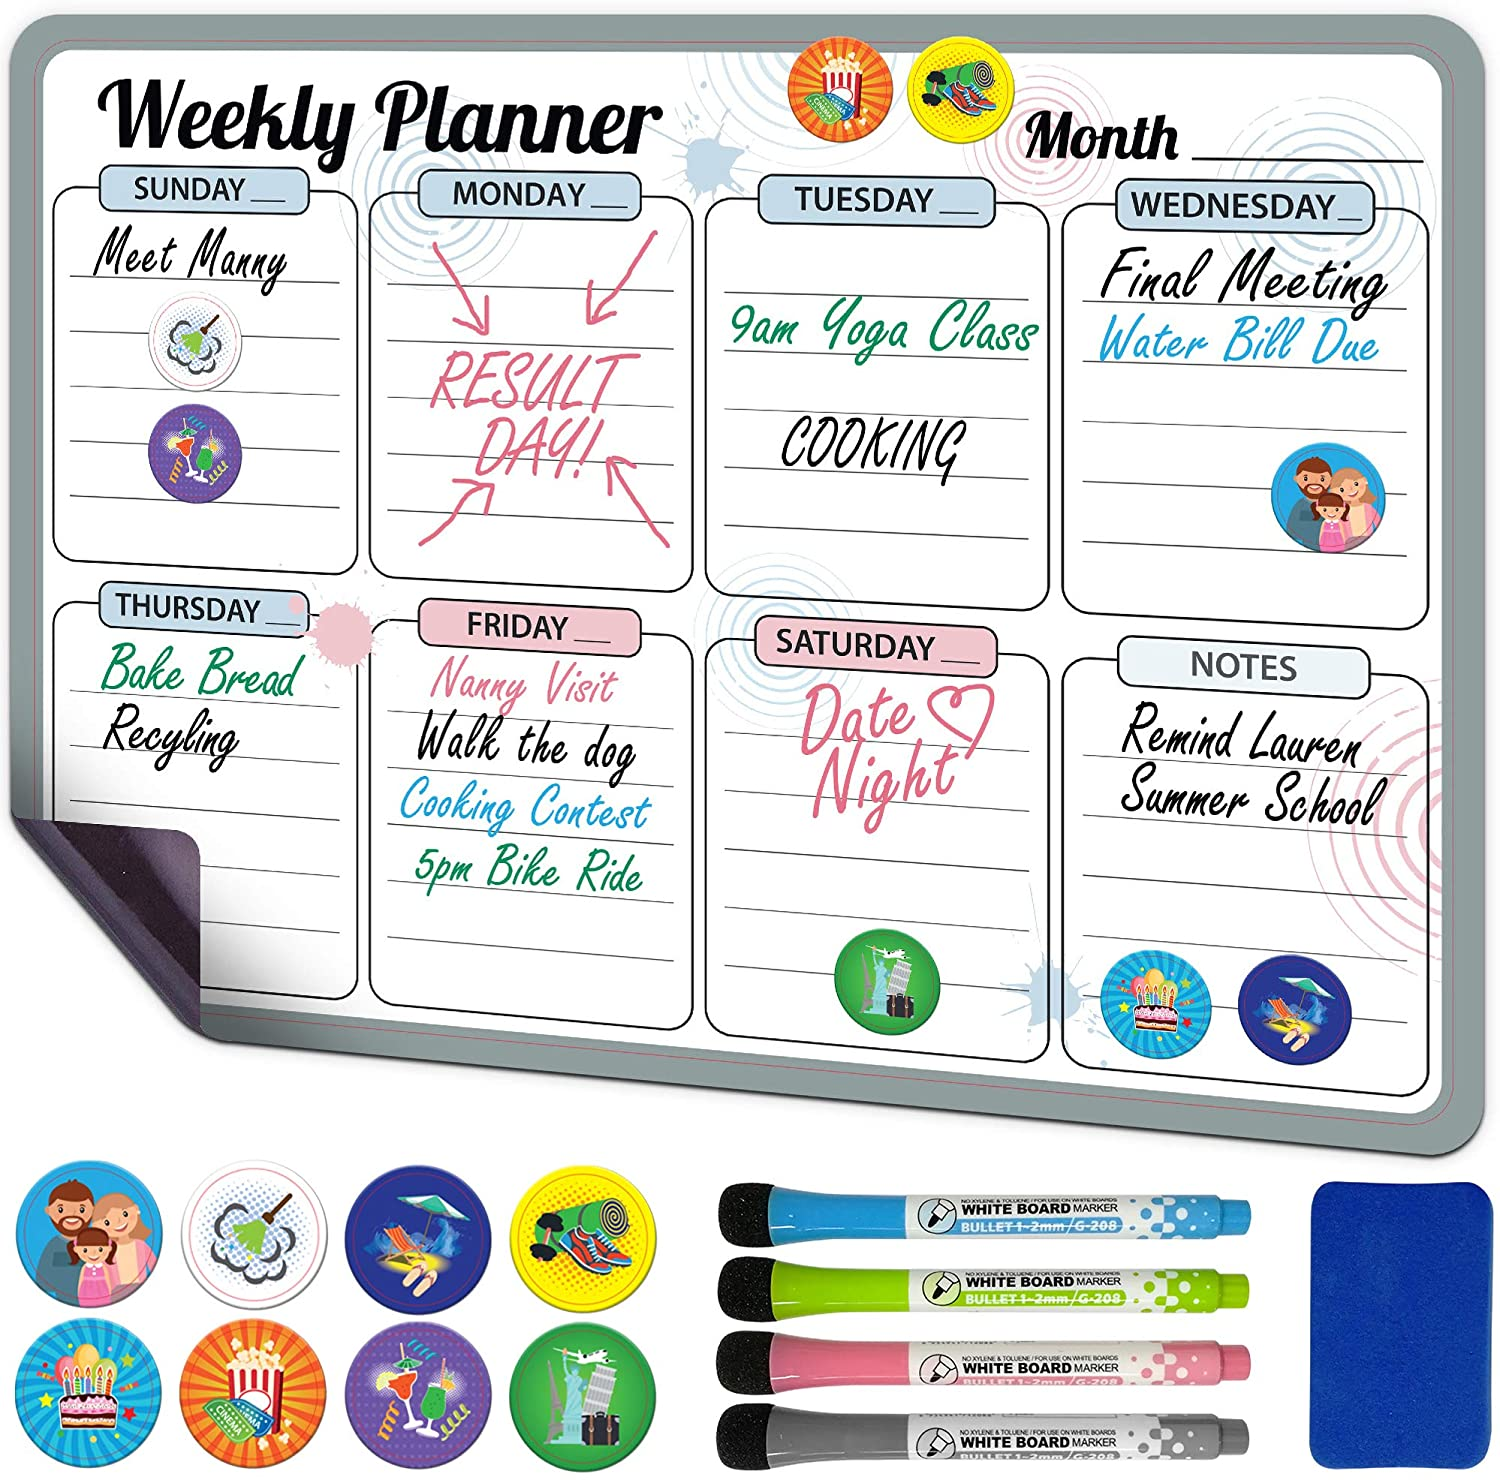 """Magnetic Dry Erase Calendar for Fridge Weekly 17 x 12"""" - Magnetic Calendar for Refrigerator - Whiteboard Calendar with 8 Event Magnets and 4 Markers - Magnetic Whiteboard Calendar for Refrigerator"""